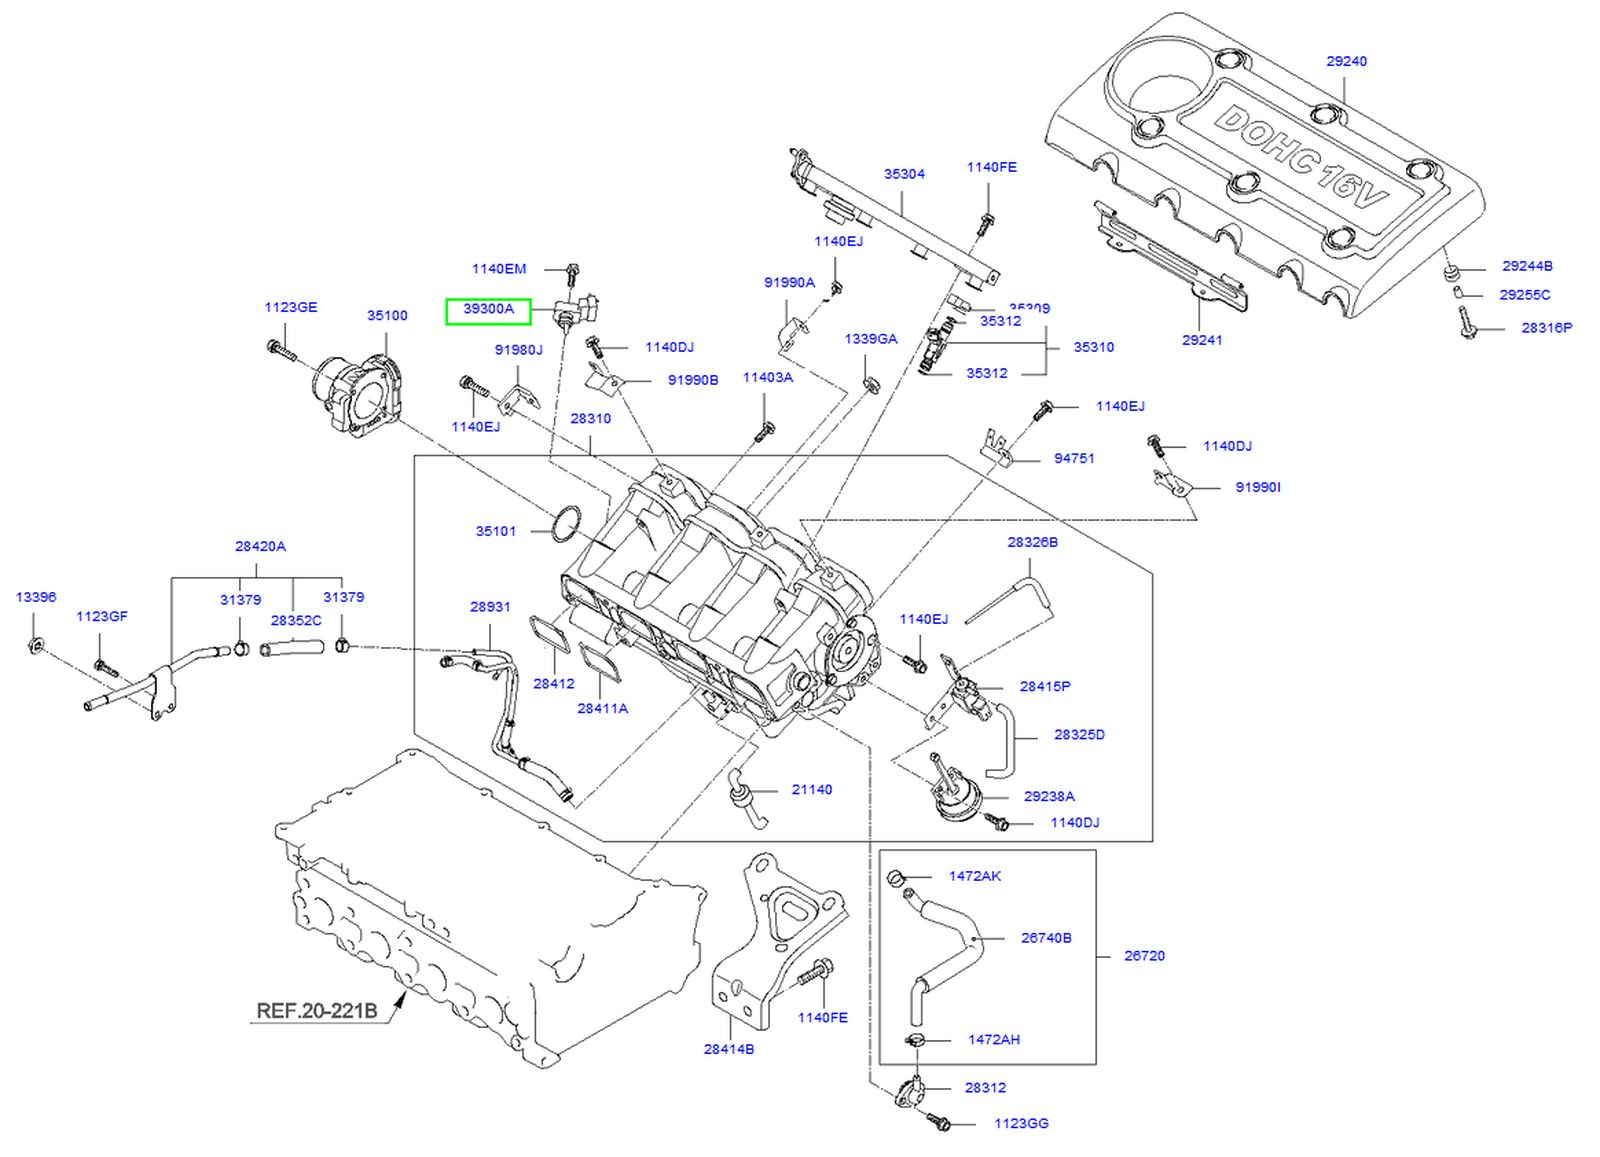 Kia Sorento Engine Diagram Sensors • Wiring Diagram For Free